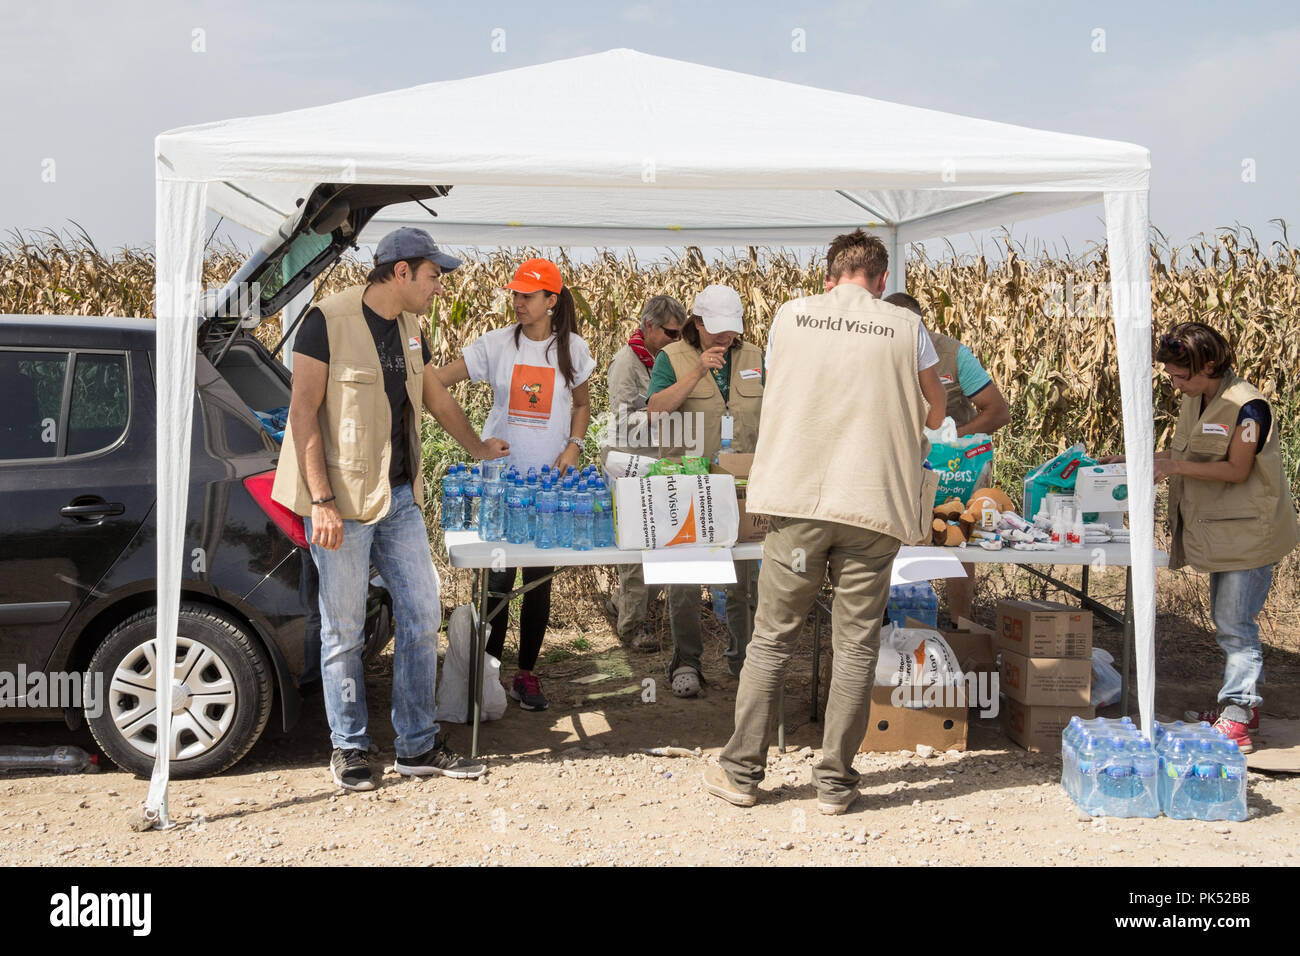 TOVARNIK, CROATIA - SEPTEMBER 19, 2015: Workers of the NGO World Vision provinding aid to refugees at the border between Serbia and Croatia, on the Ba - Stock Image